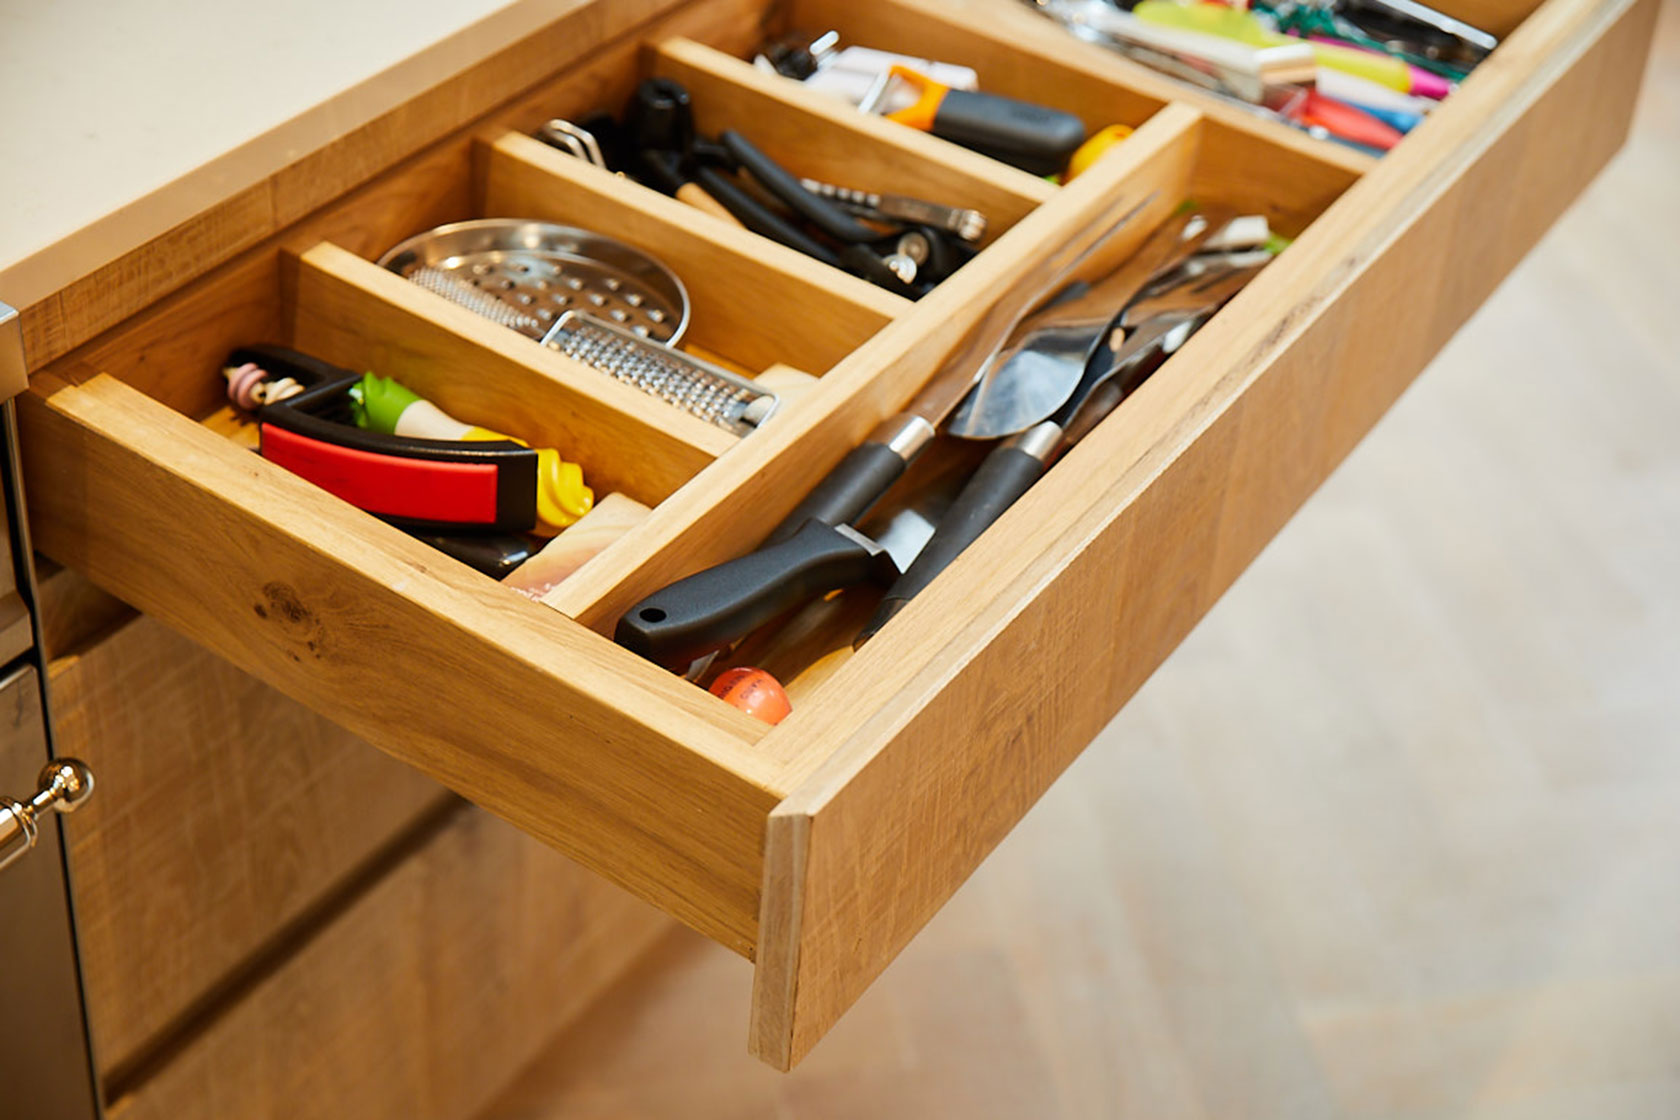 Solid oak drawer divide filled with knives and utensils